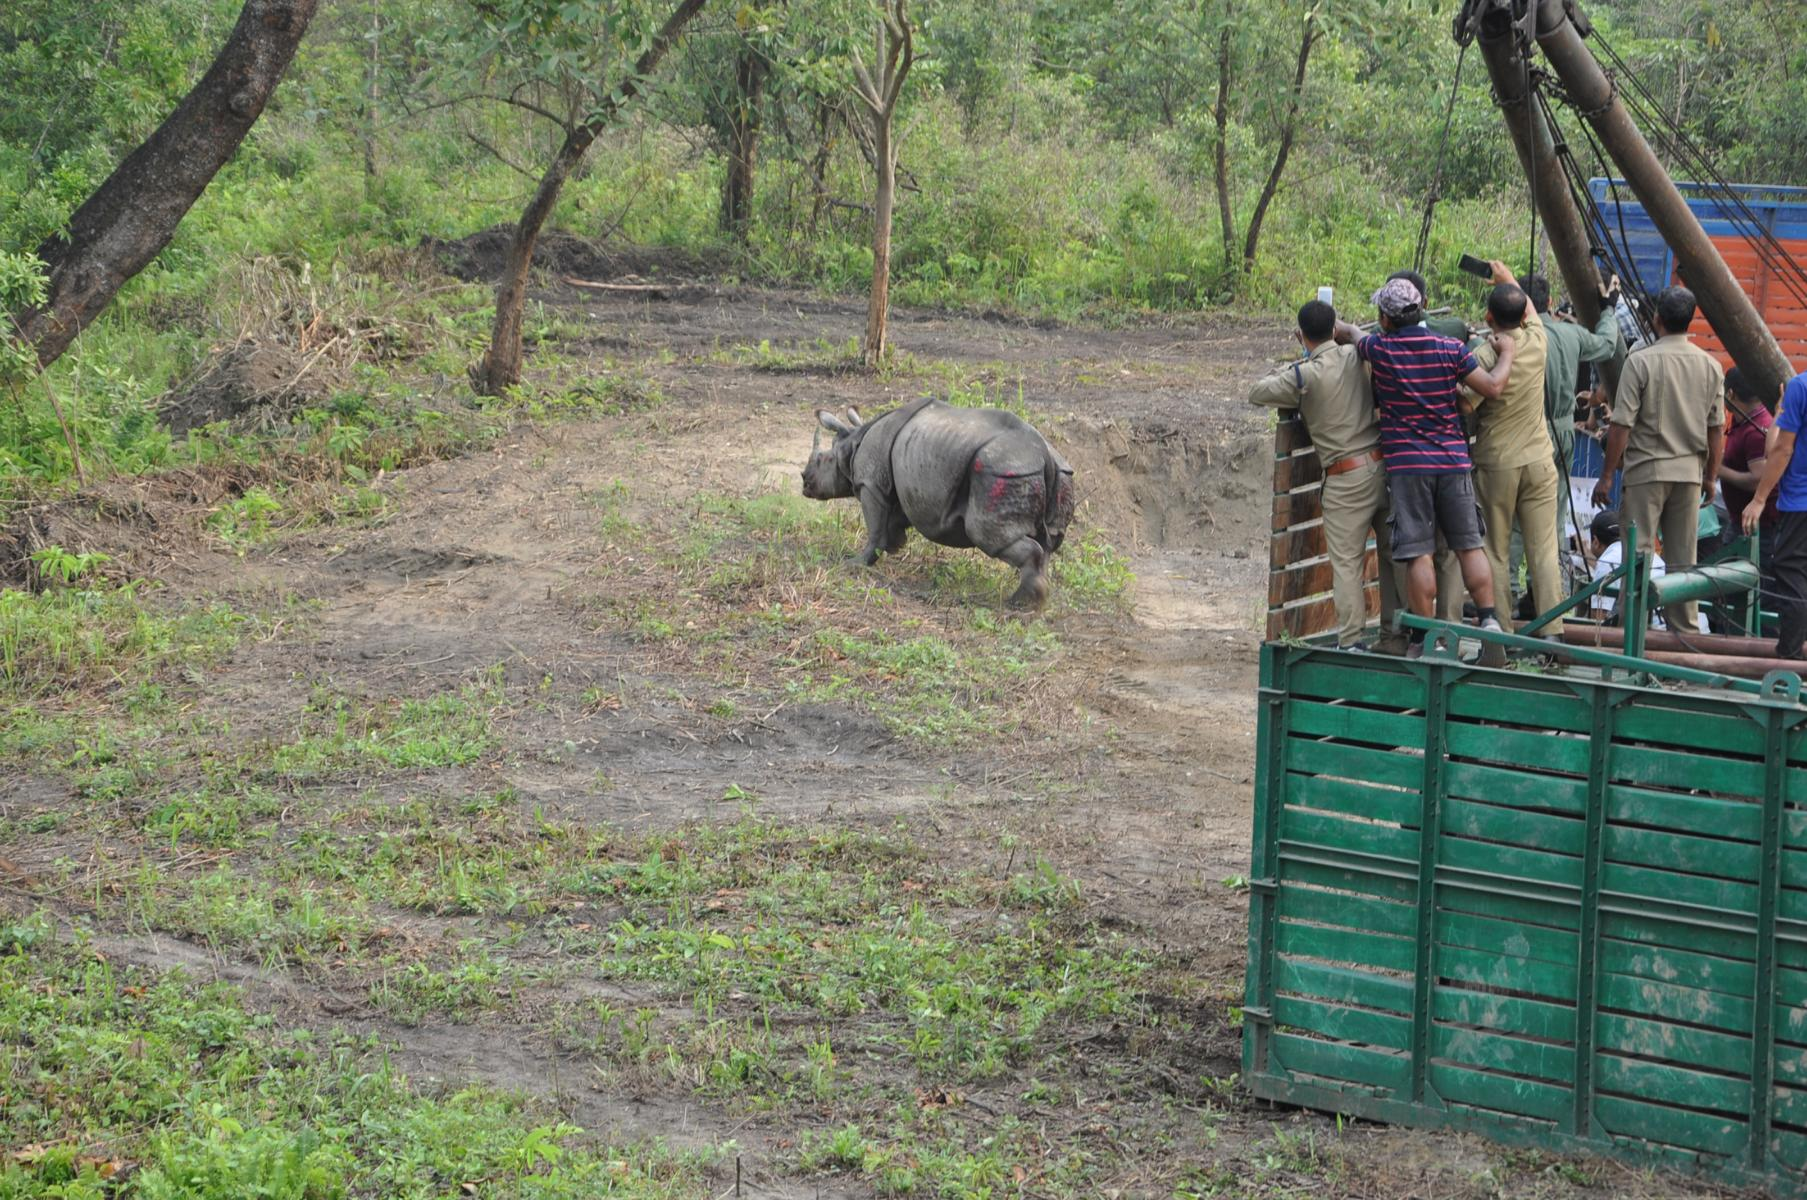 Manas Gets 2 More Rhinos